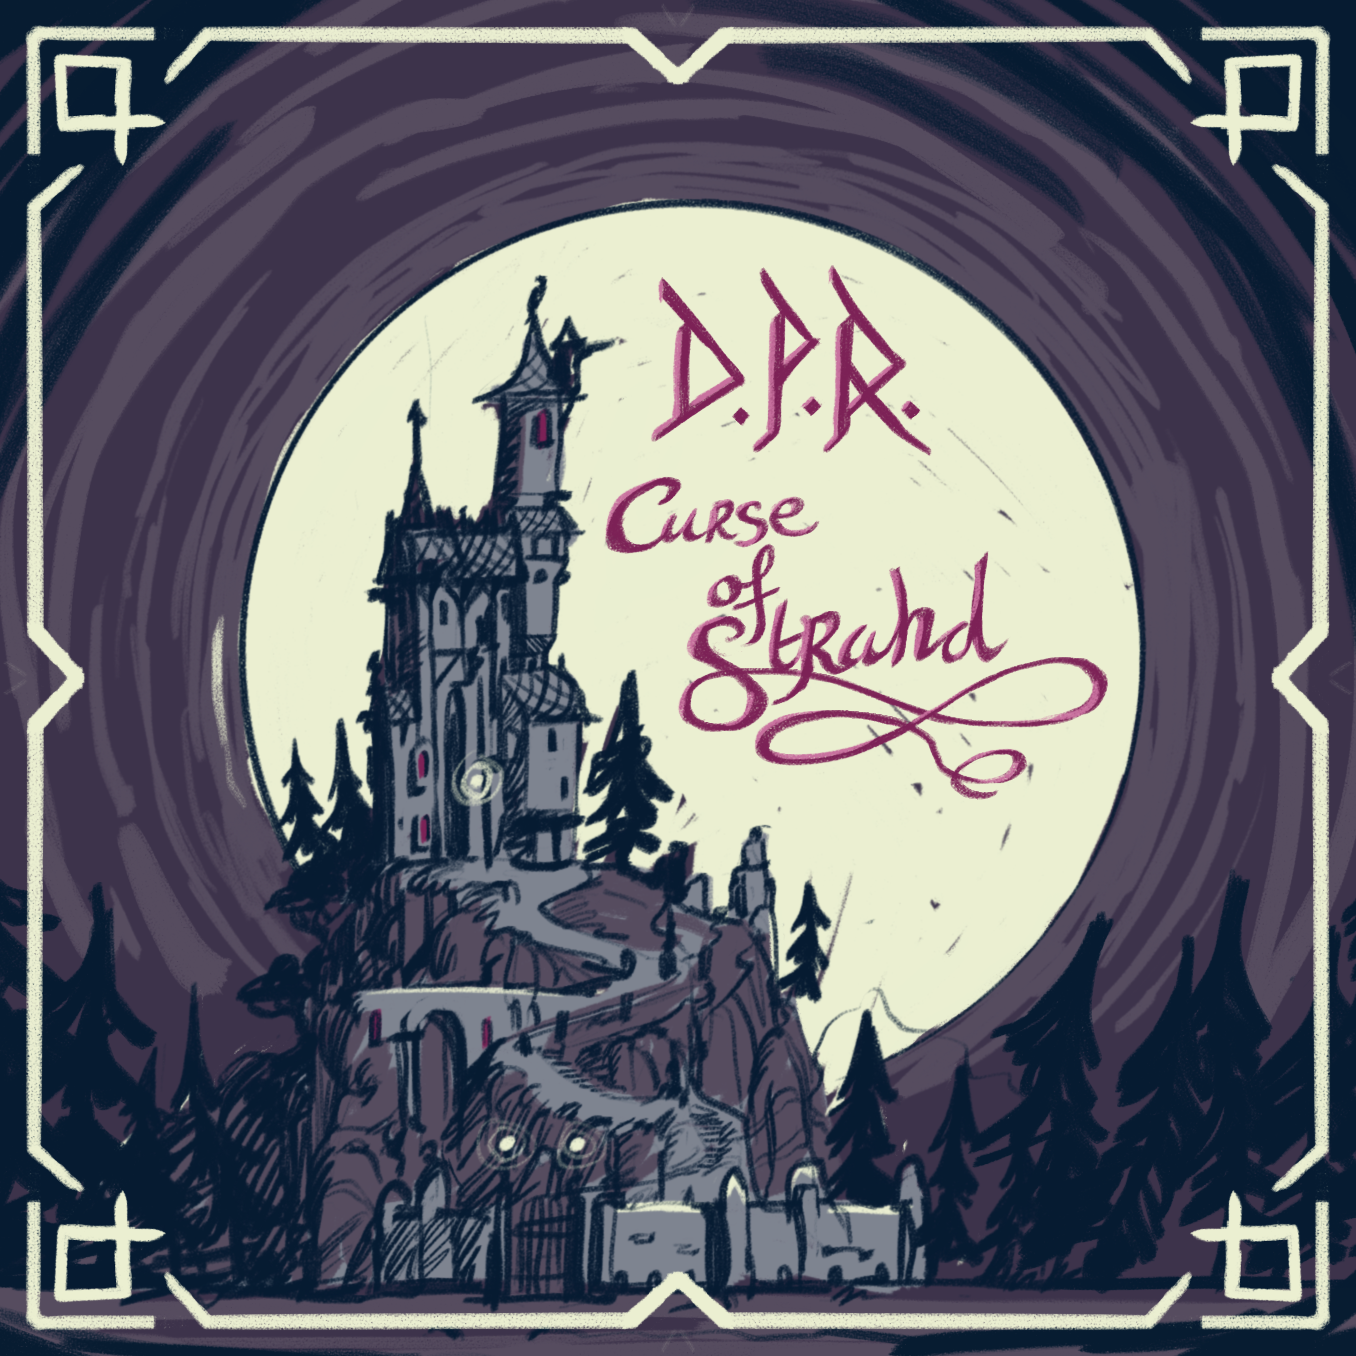 DPR – CURSE OF STRAHD 40 – IT WAS THE BEST OF TIMES, IT WAS THE CURSED OF TIMES